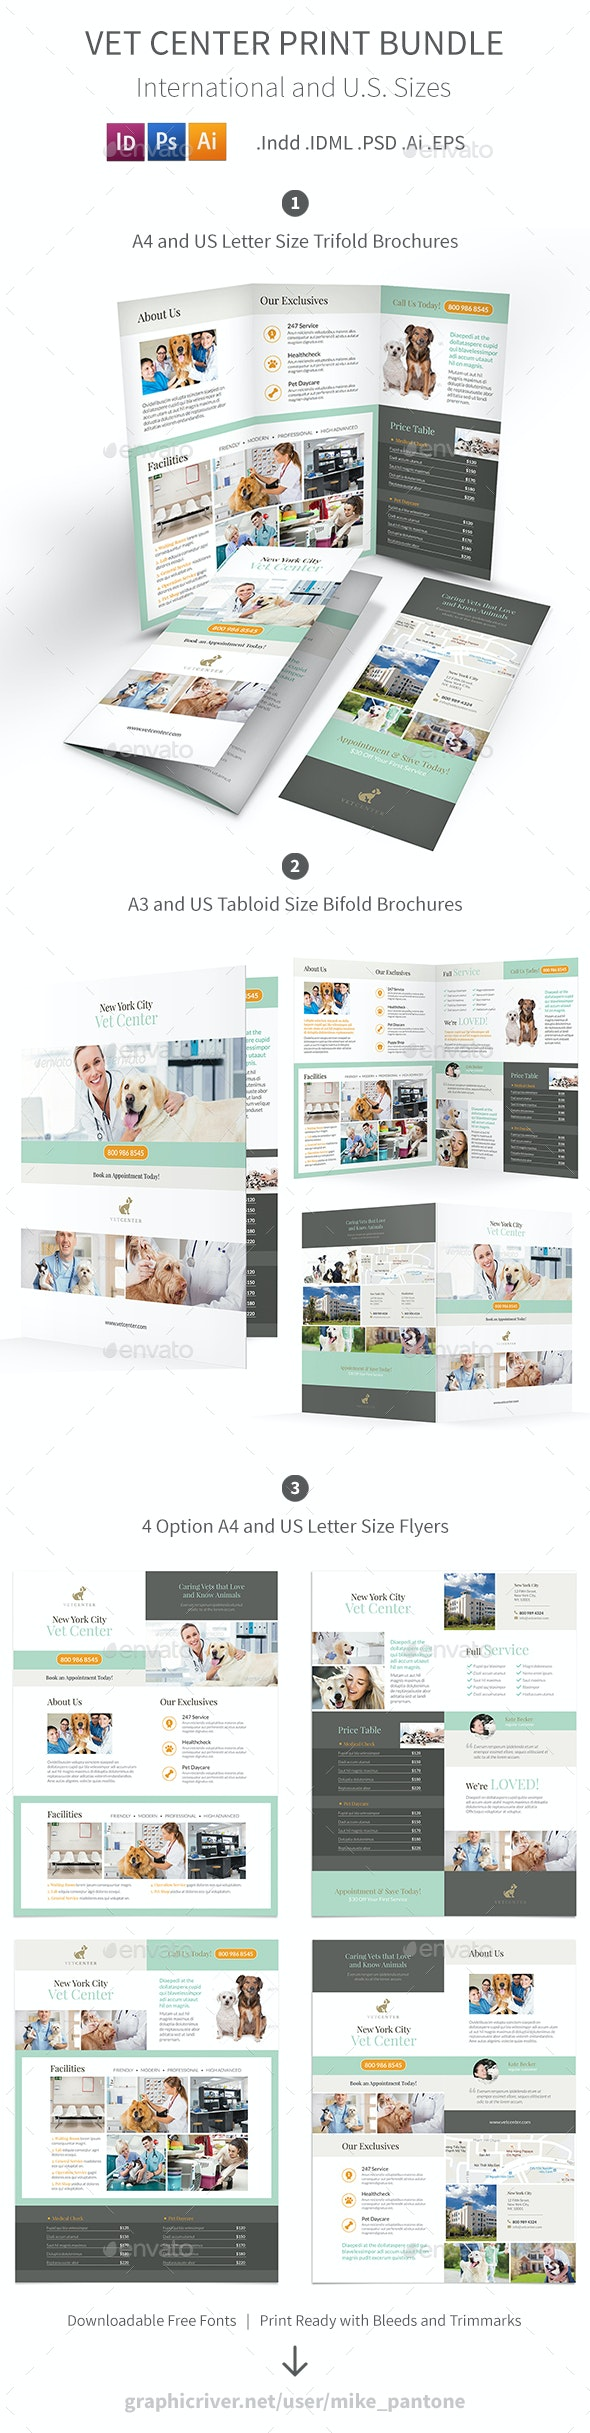 Vet Center Print Bundle - Informational Brochures